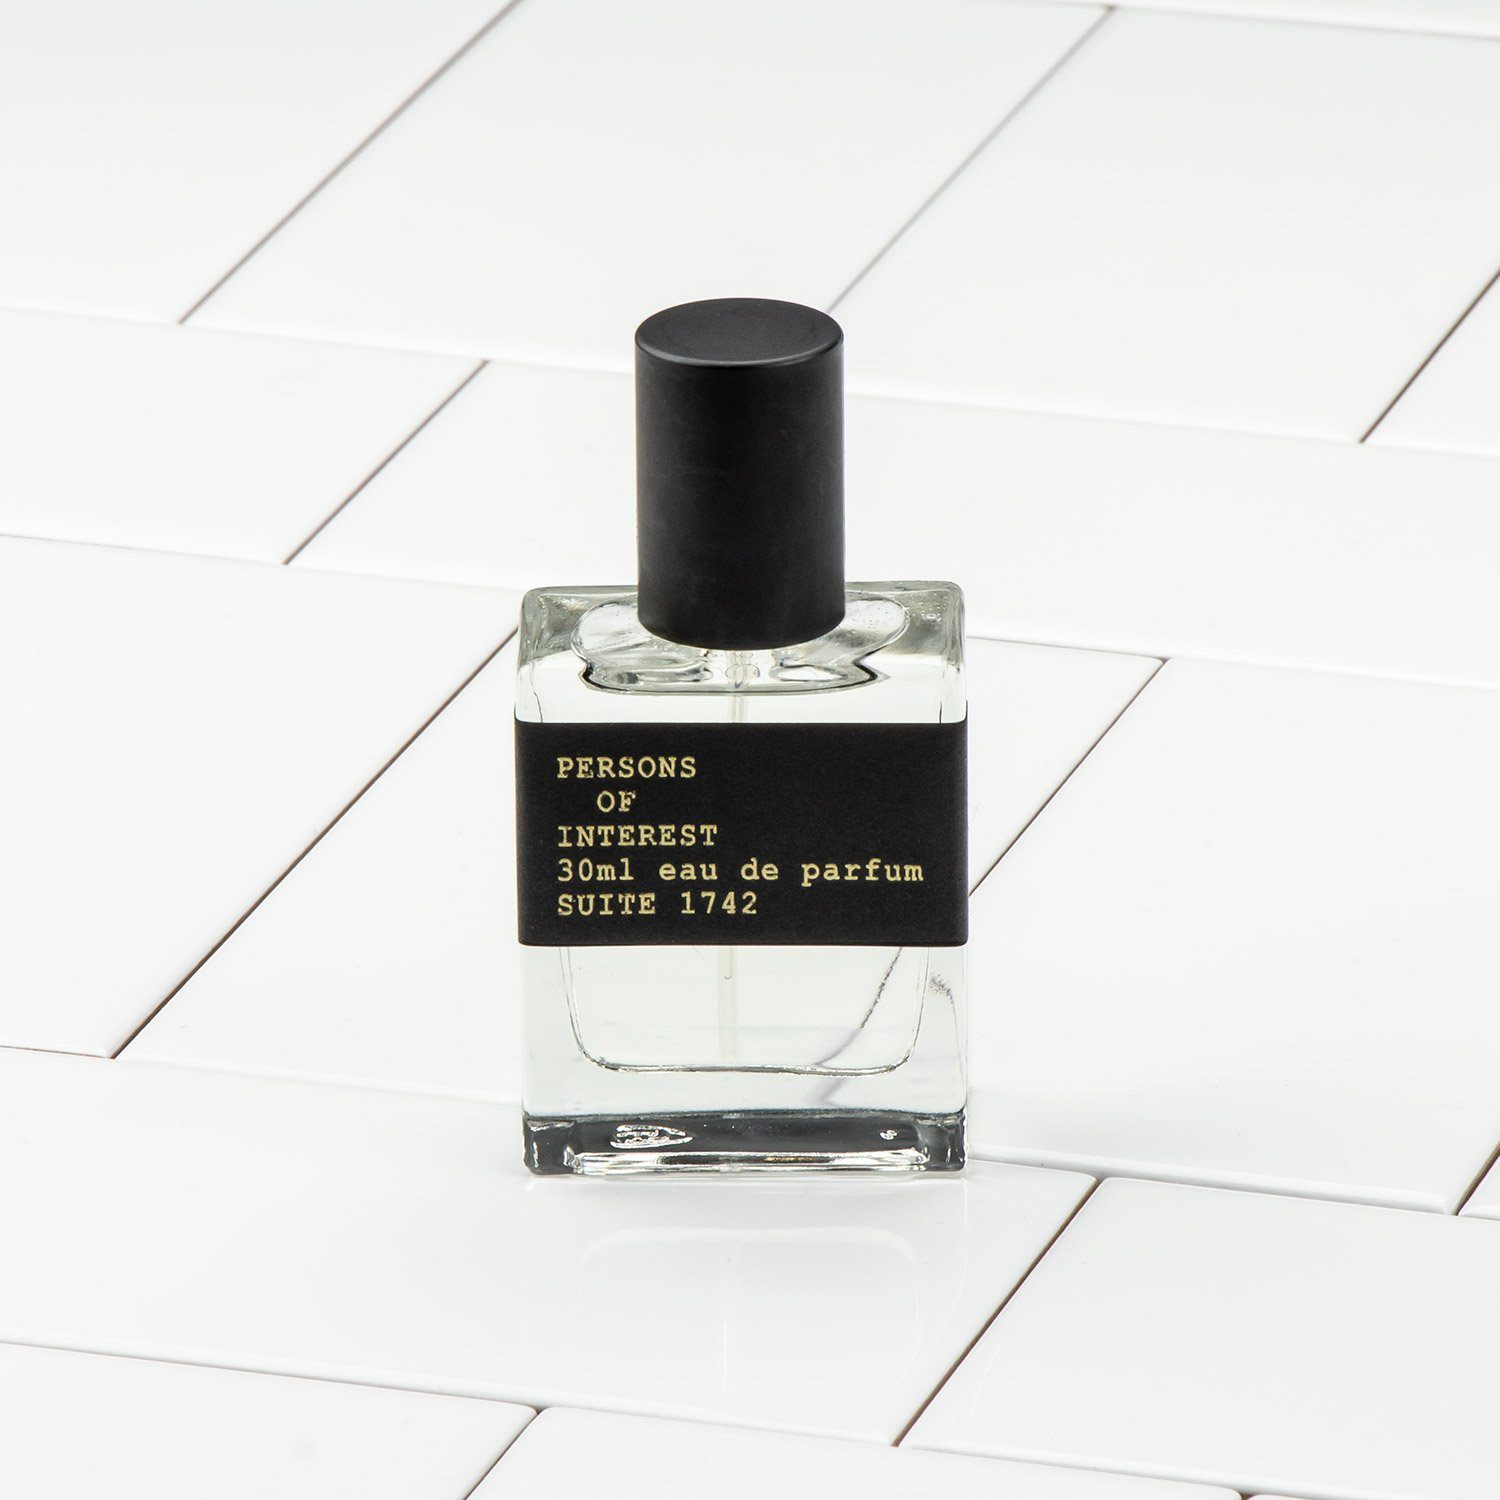 Persons of Interest Suite 1742 Eau de Parfum, 30ml Bottle